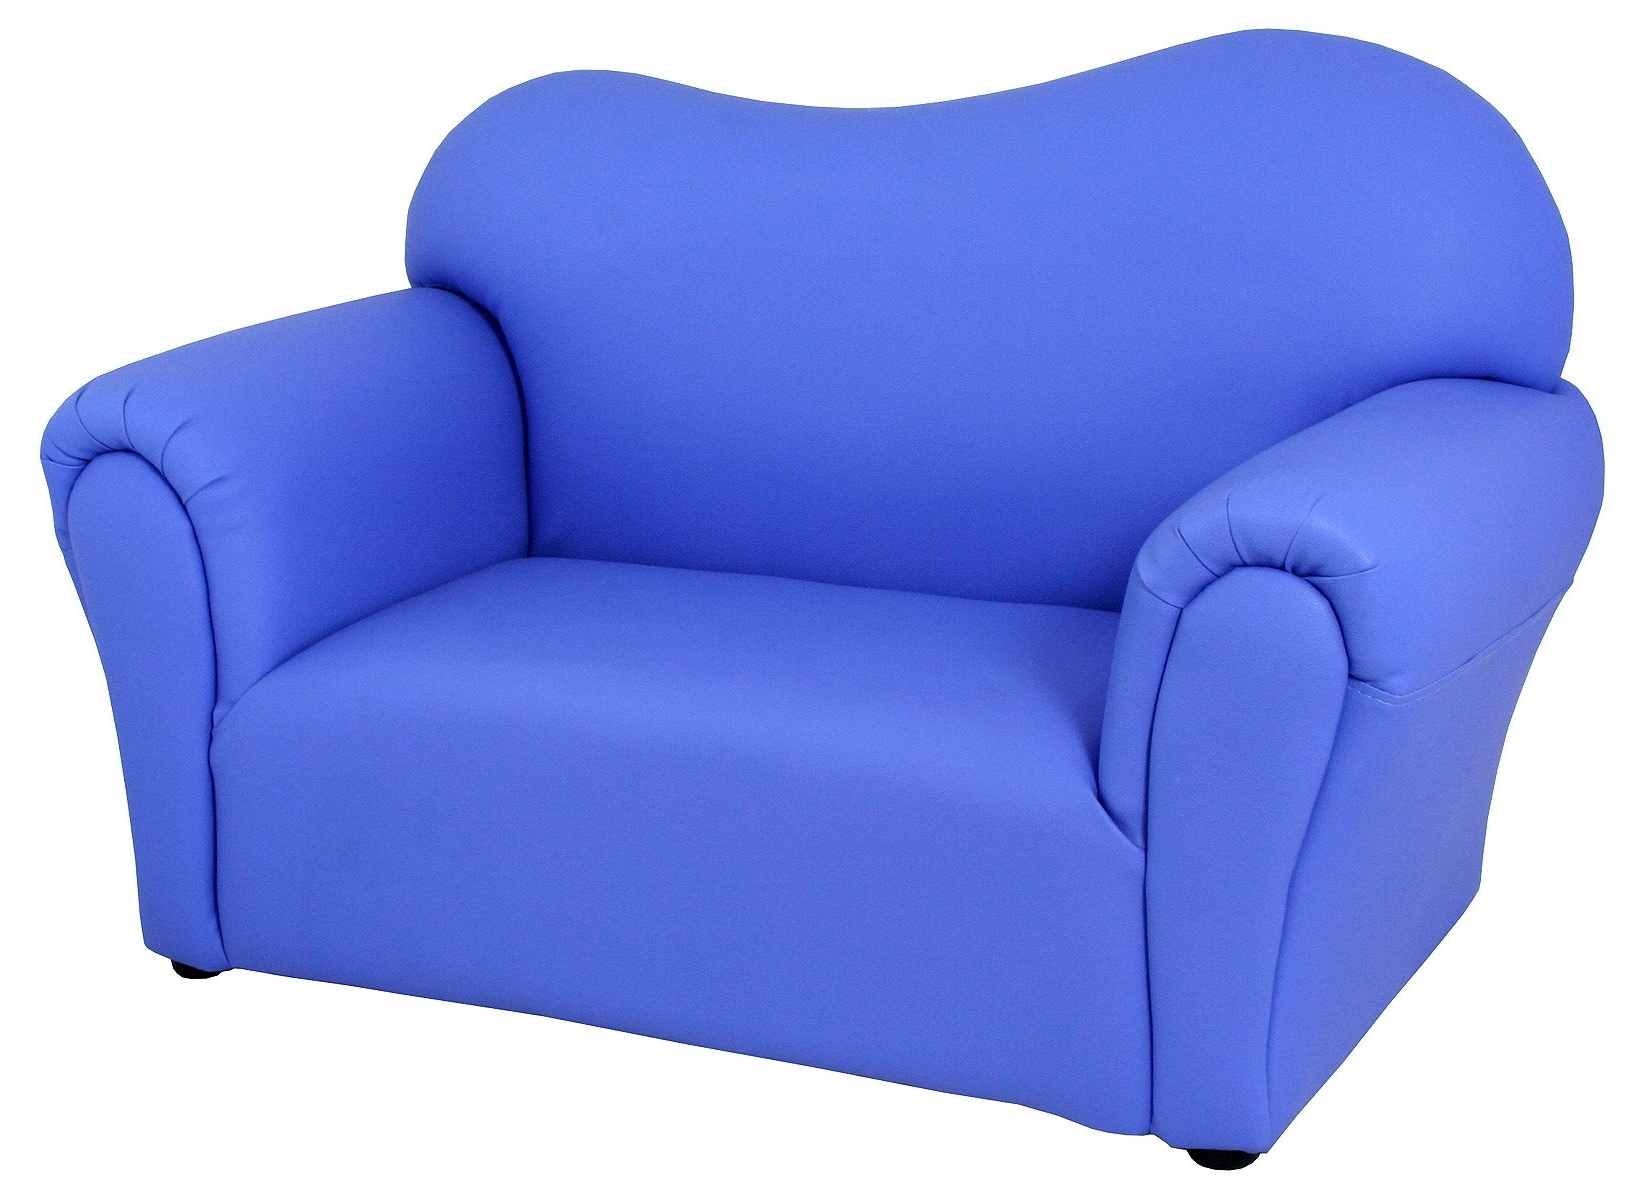 Childrens Sofas Throughout Best And Newest Childrens Blue Mini Sofa – Be Fabulous! (View 3 of 15)